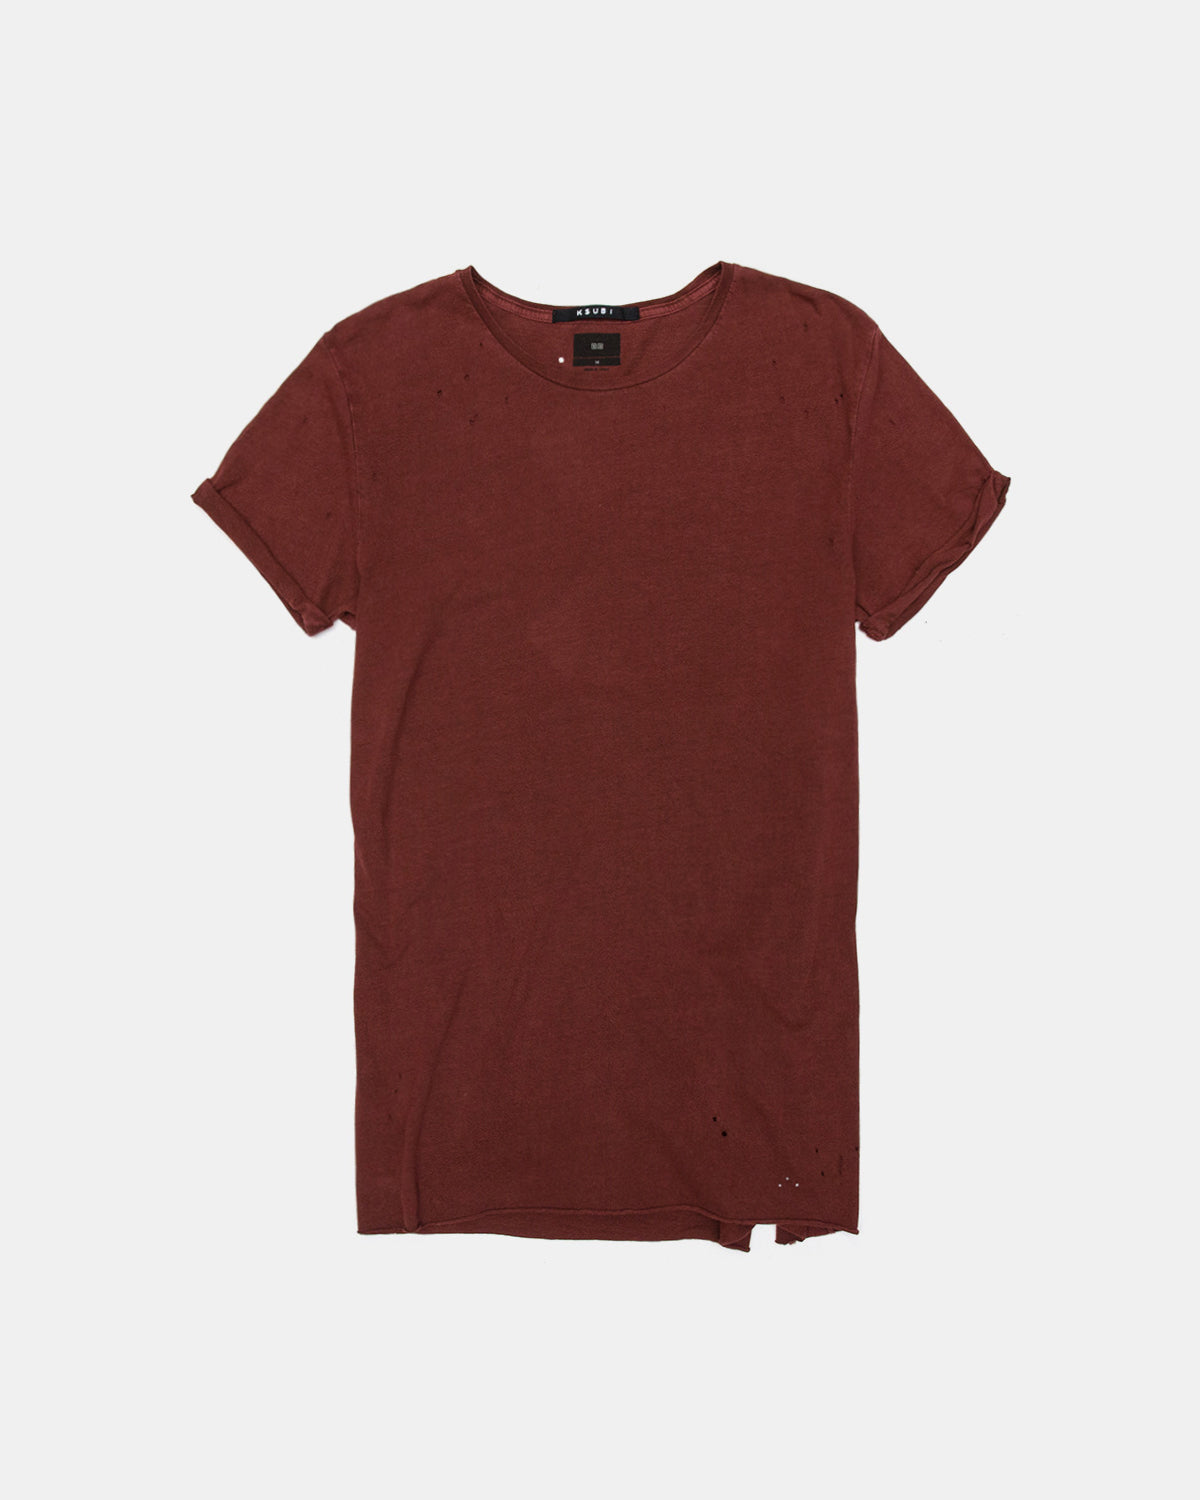 Kodeine SS Tee Burnt Orange